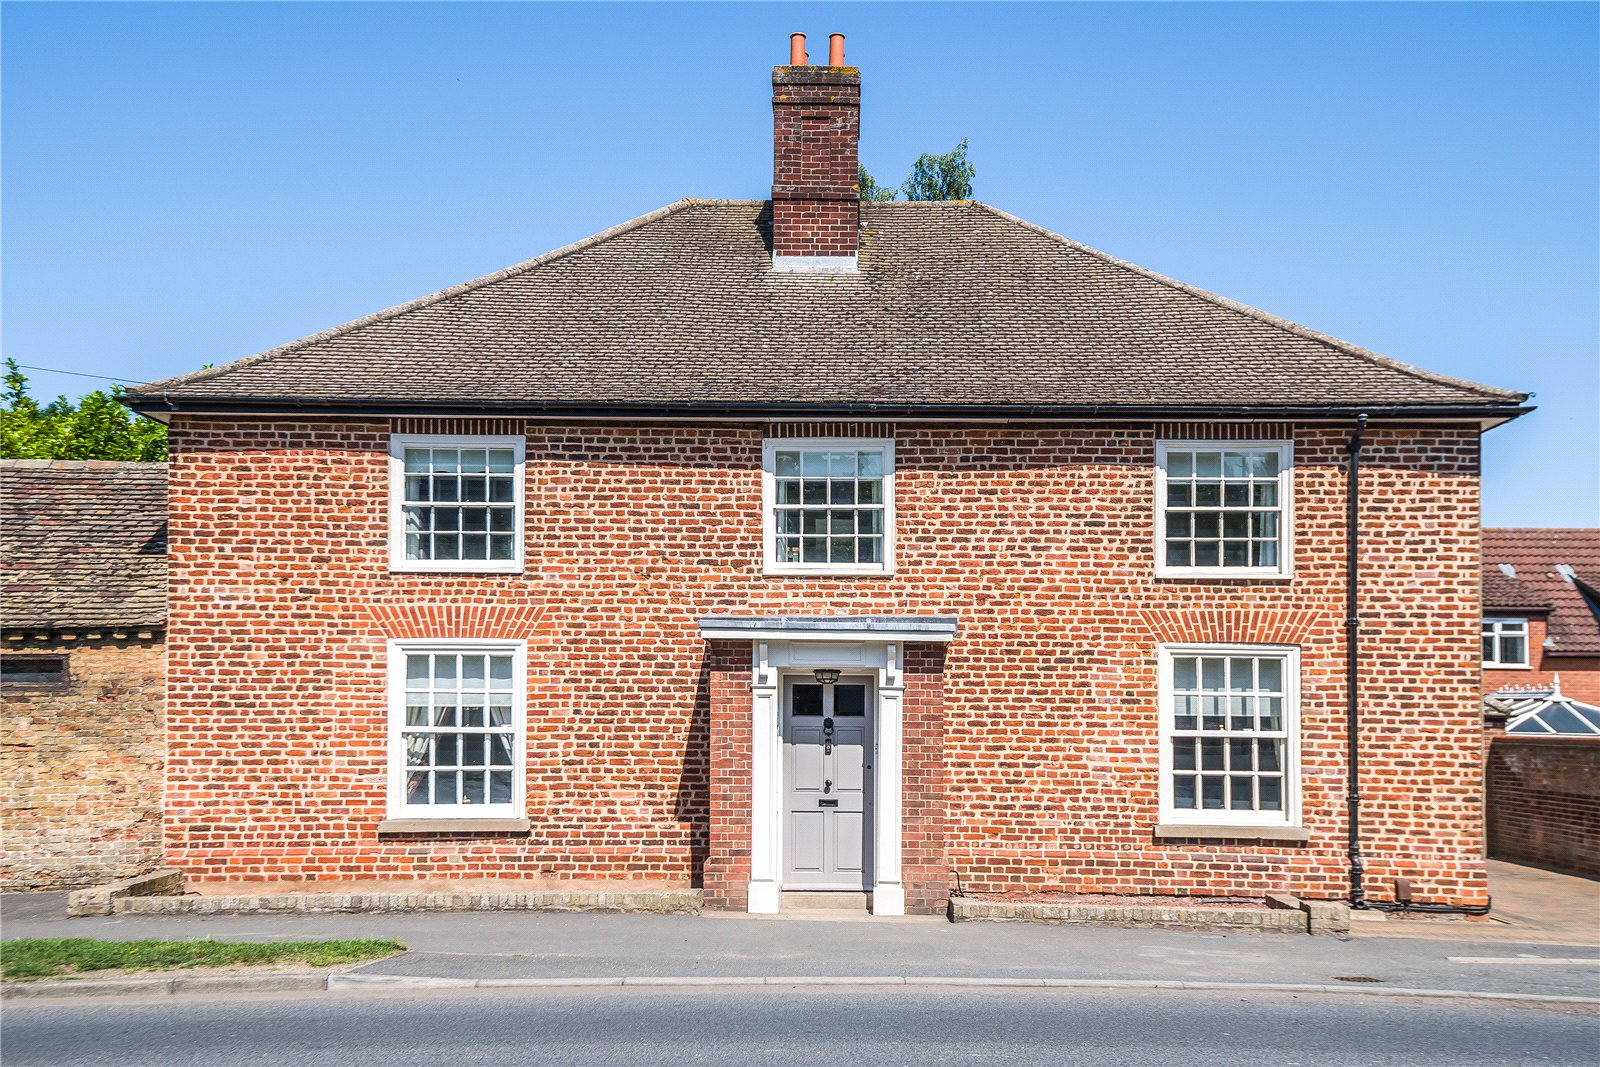 4 bed house for sale in Main Street, Hartford 0